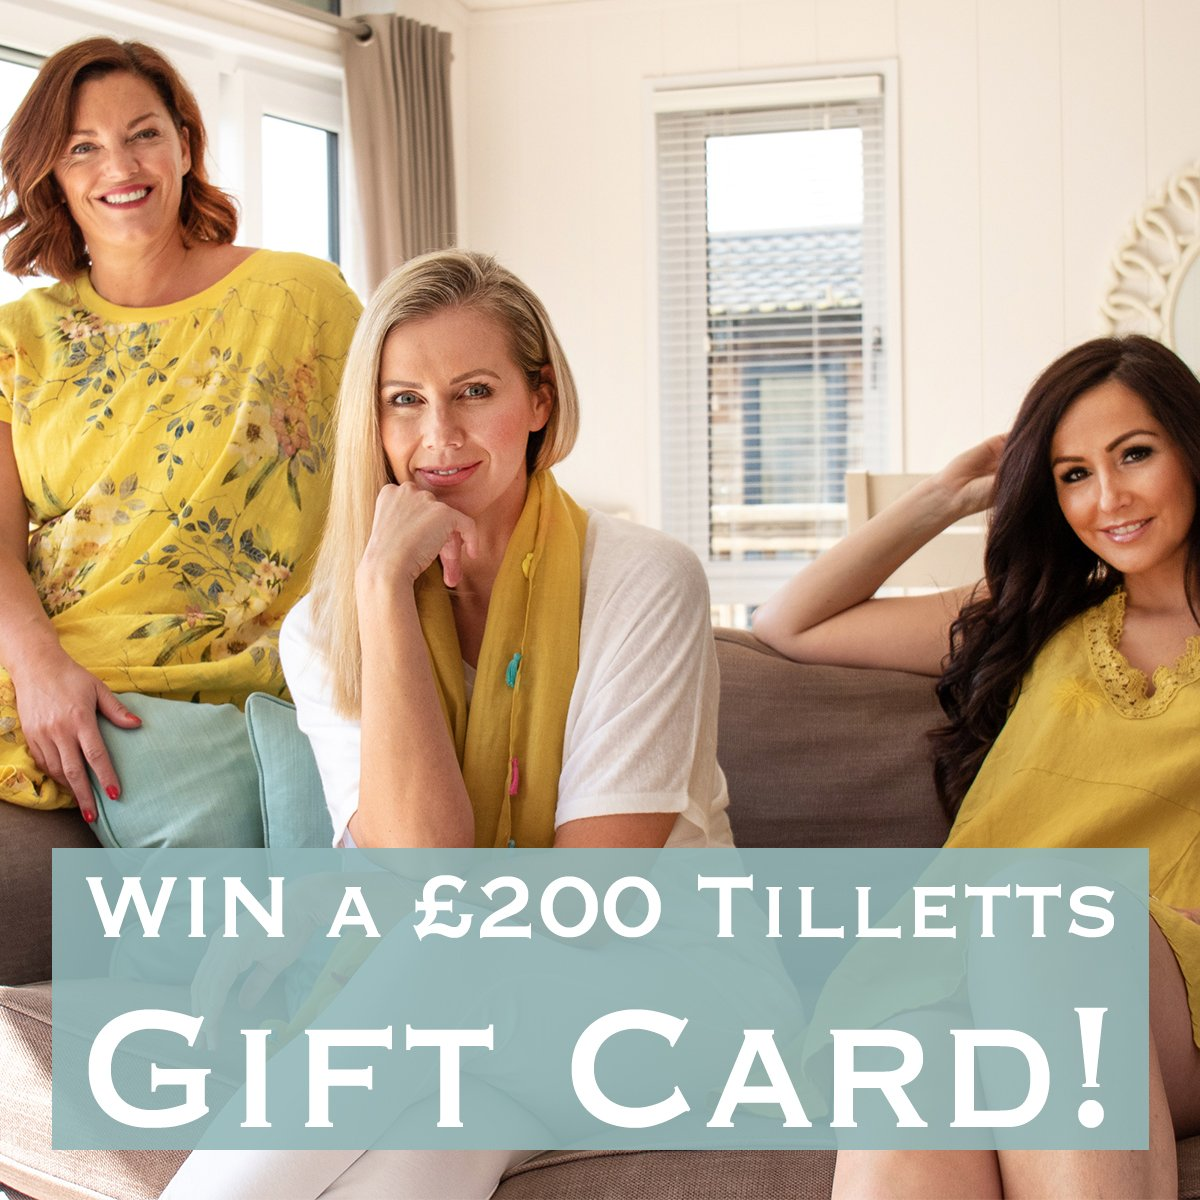 Follow and Retweet for your chance to WIN a massive £200 Tilletts gift card!  #motivationmonday #giveaway #prizedraw #retweettowin #MondayMotivation #easterweekend #competition #tilletts #win<br>http://pic.twitter.com/TAeWBKtcJq